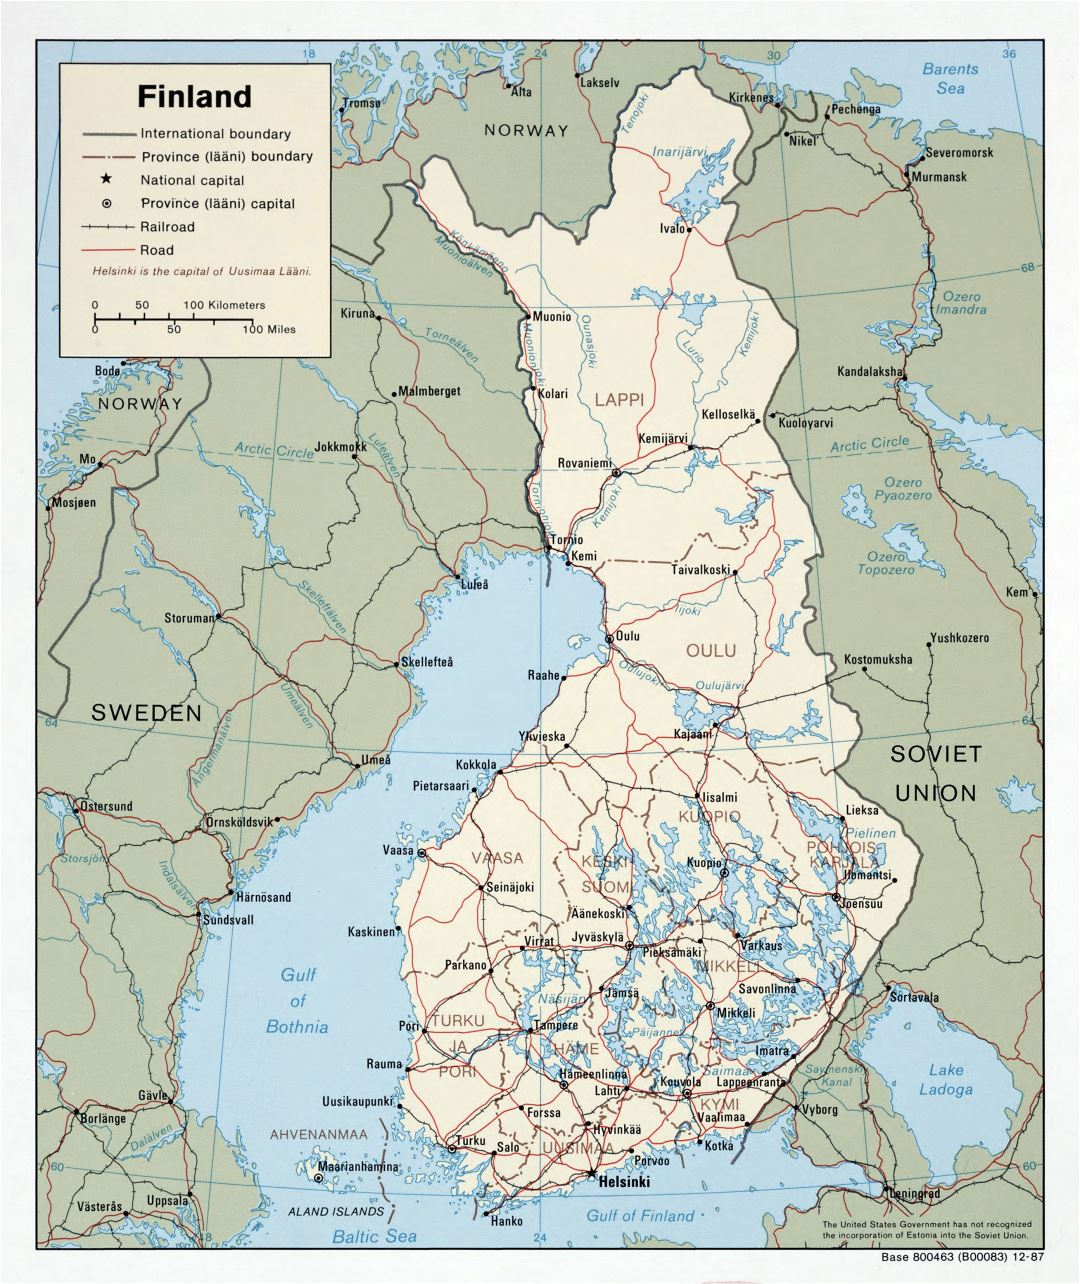 Large scale political and administrative map of Finland with roads and major cities - 1987